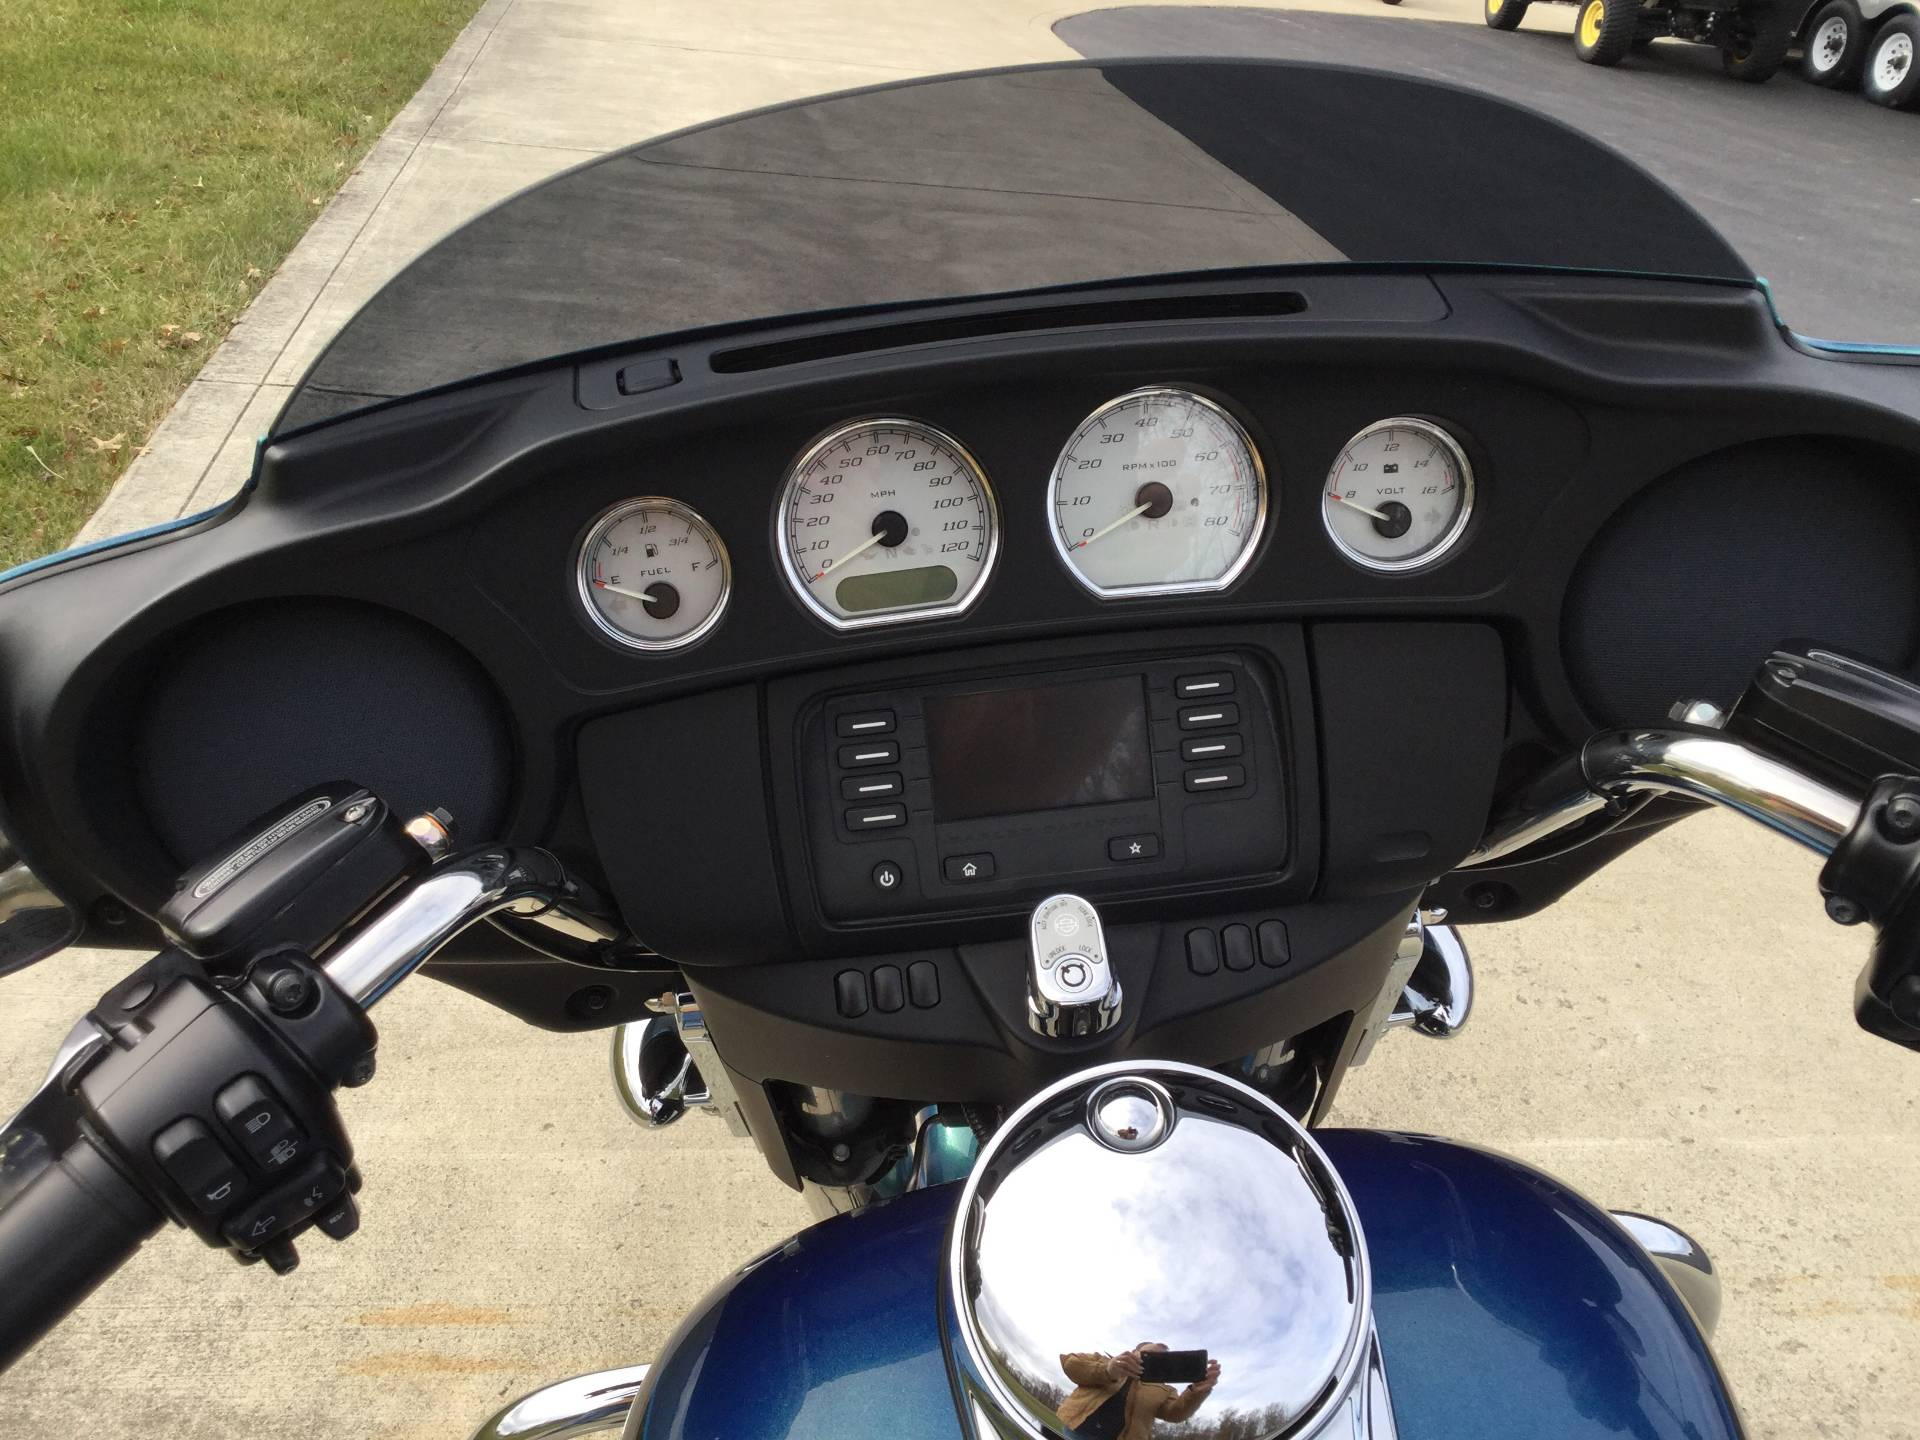 2014 Harley-Davidson Street Glide in Sunbury, Ohio - Photo 8